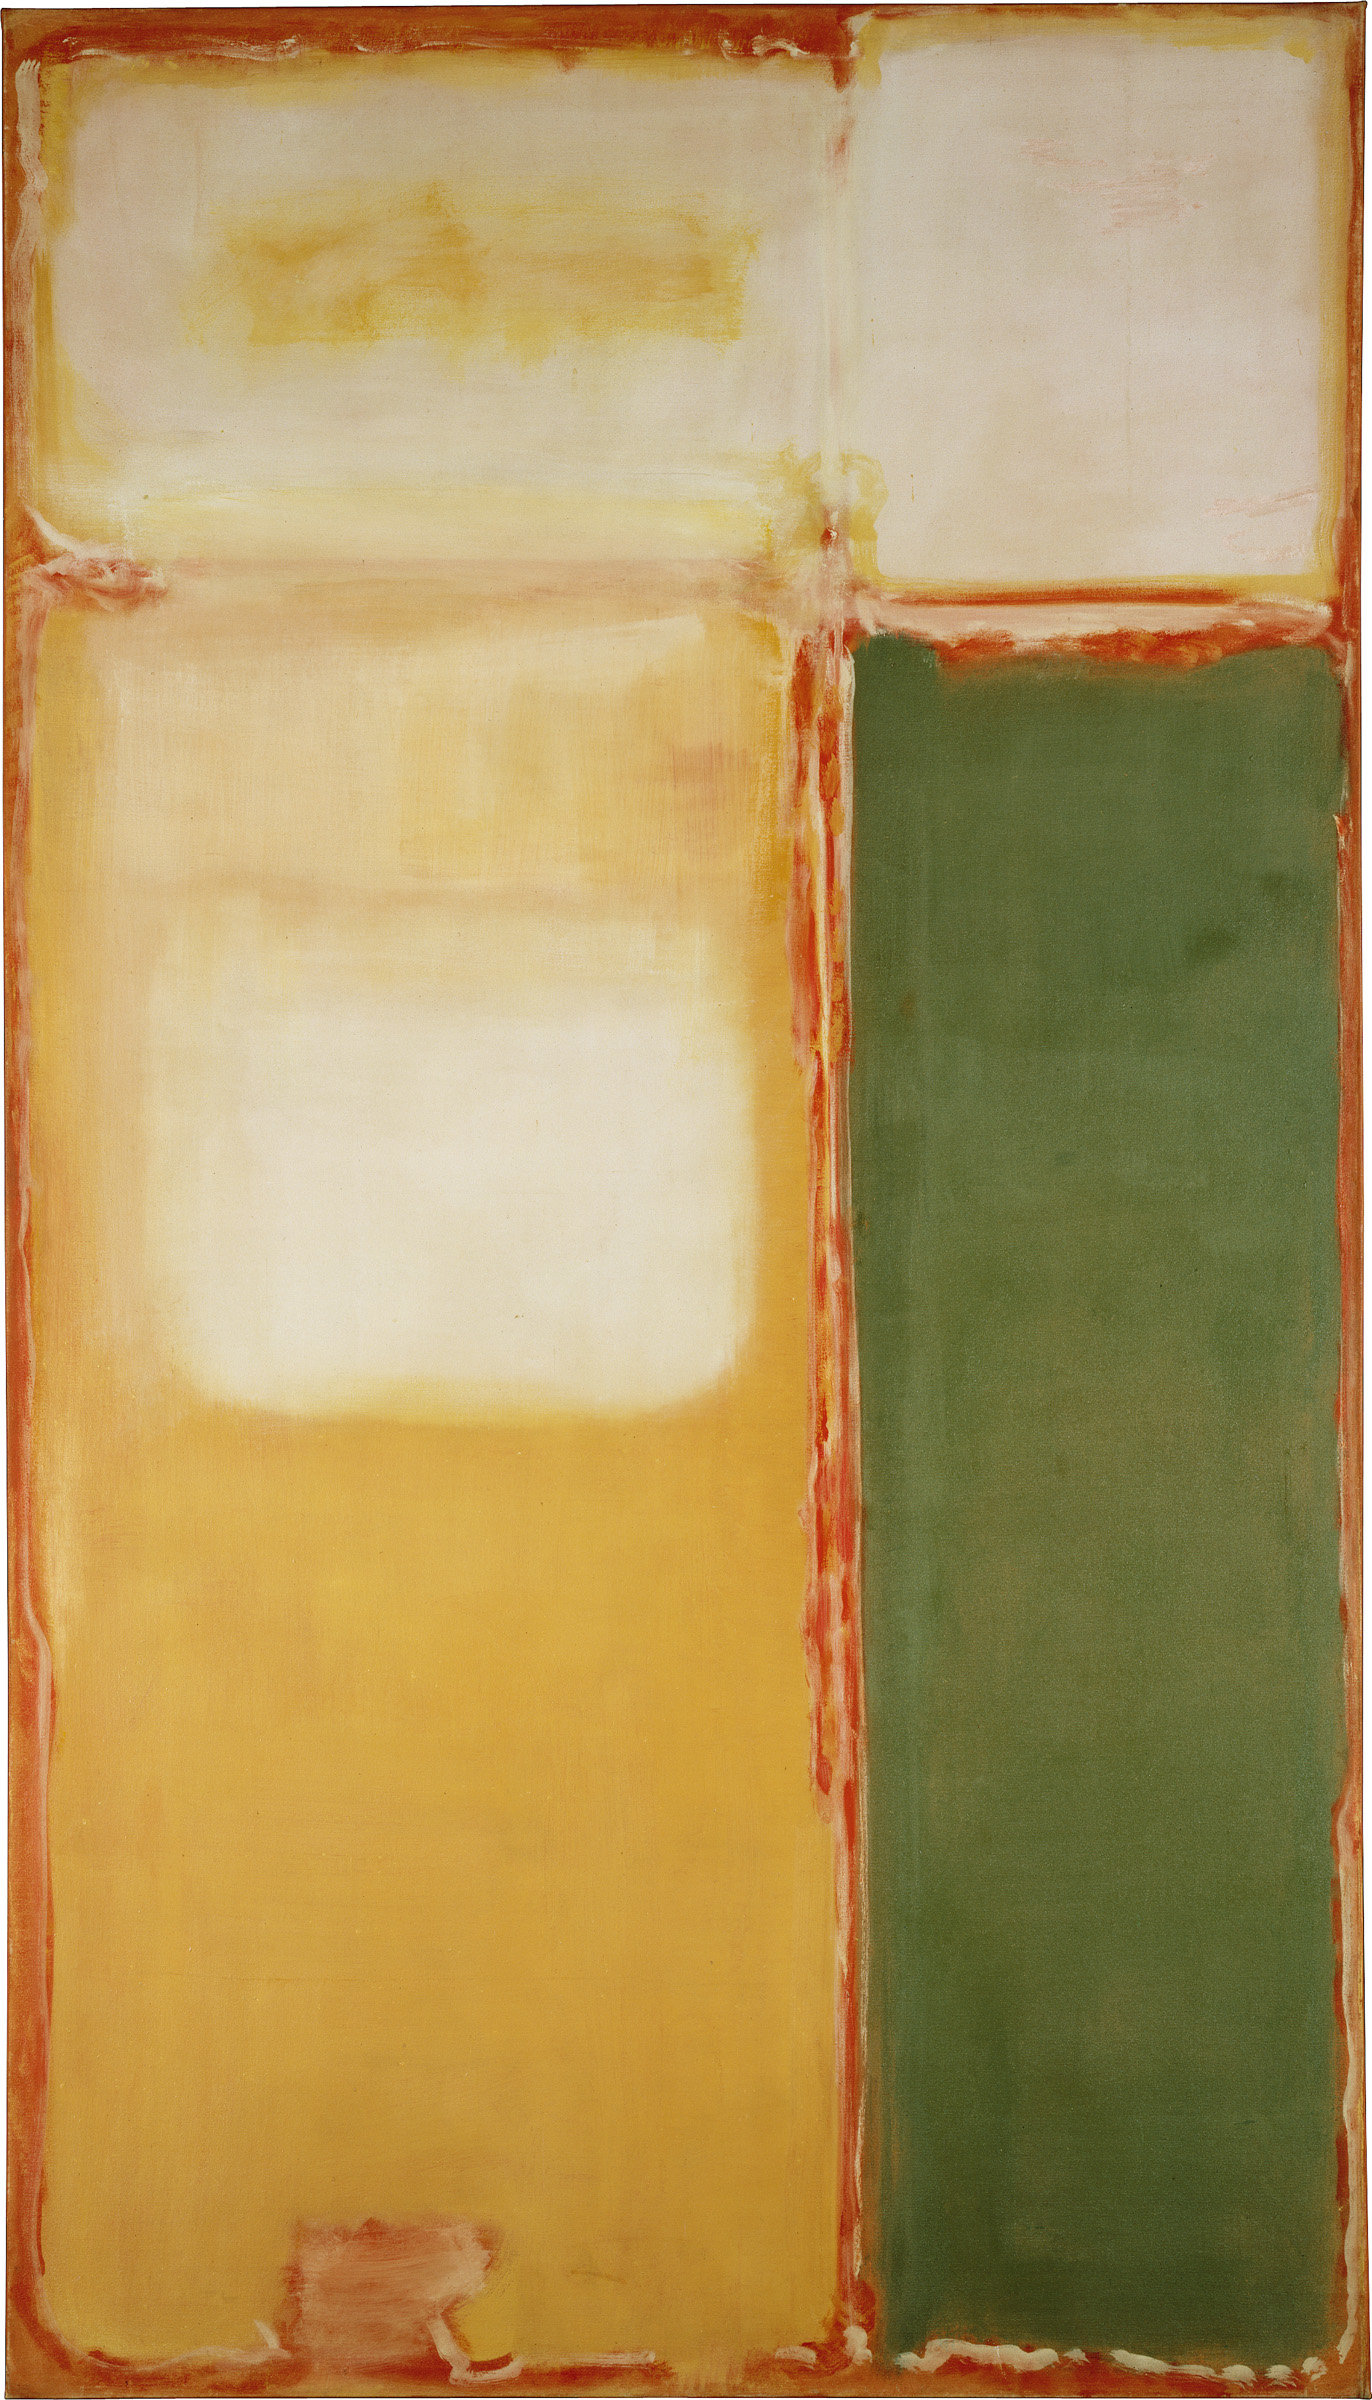 ", 1949. Oil on canvas, 93-3/4"" x 53-1/8"" (238.1 cm x 134.9 cm)."